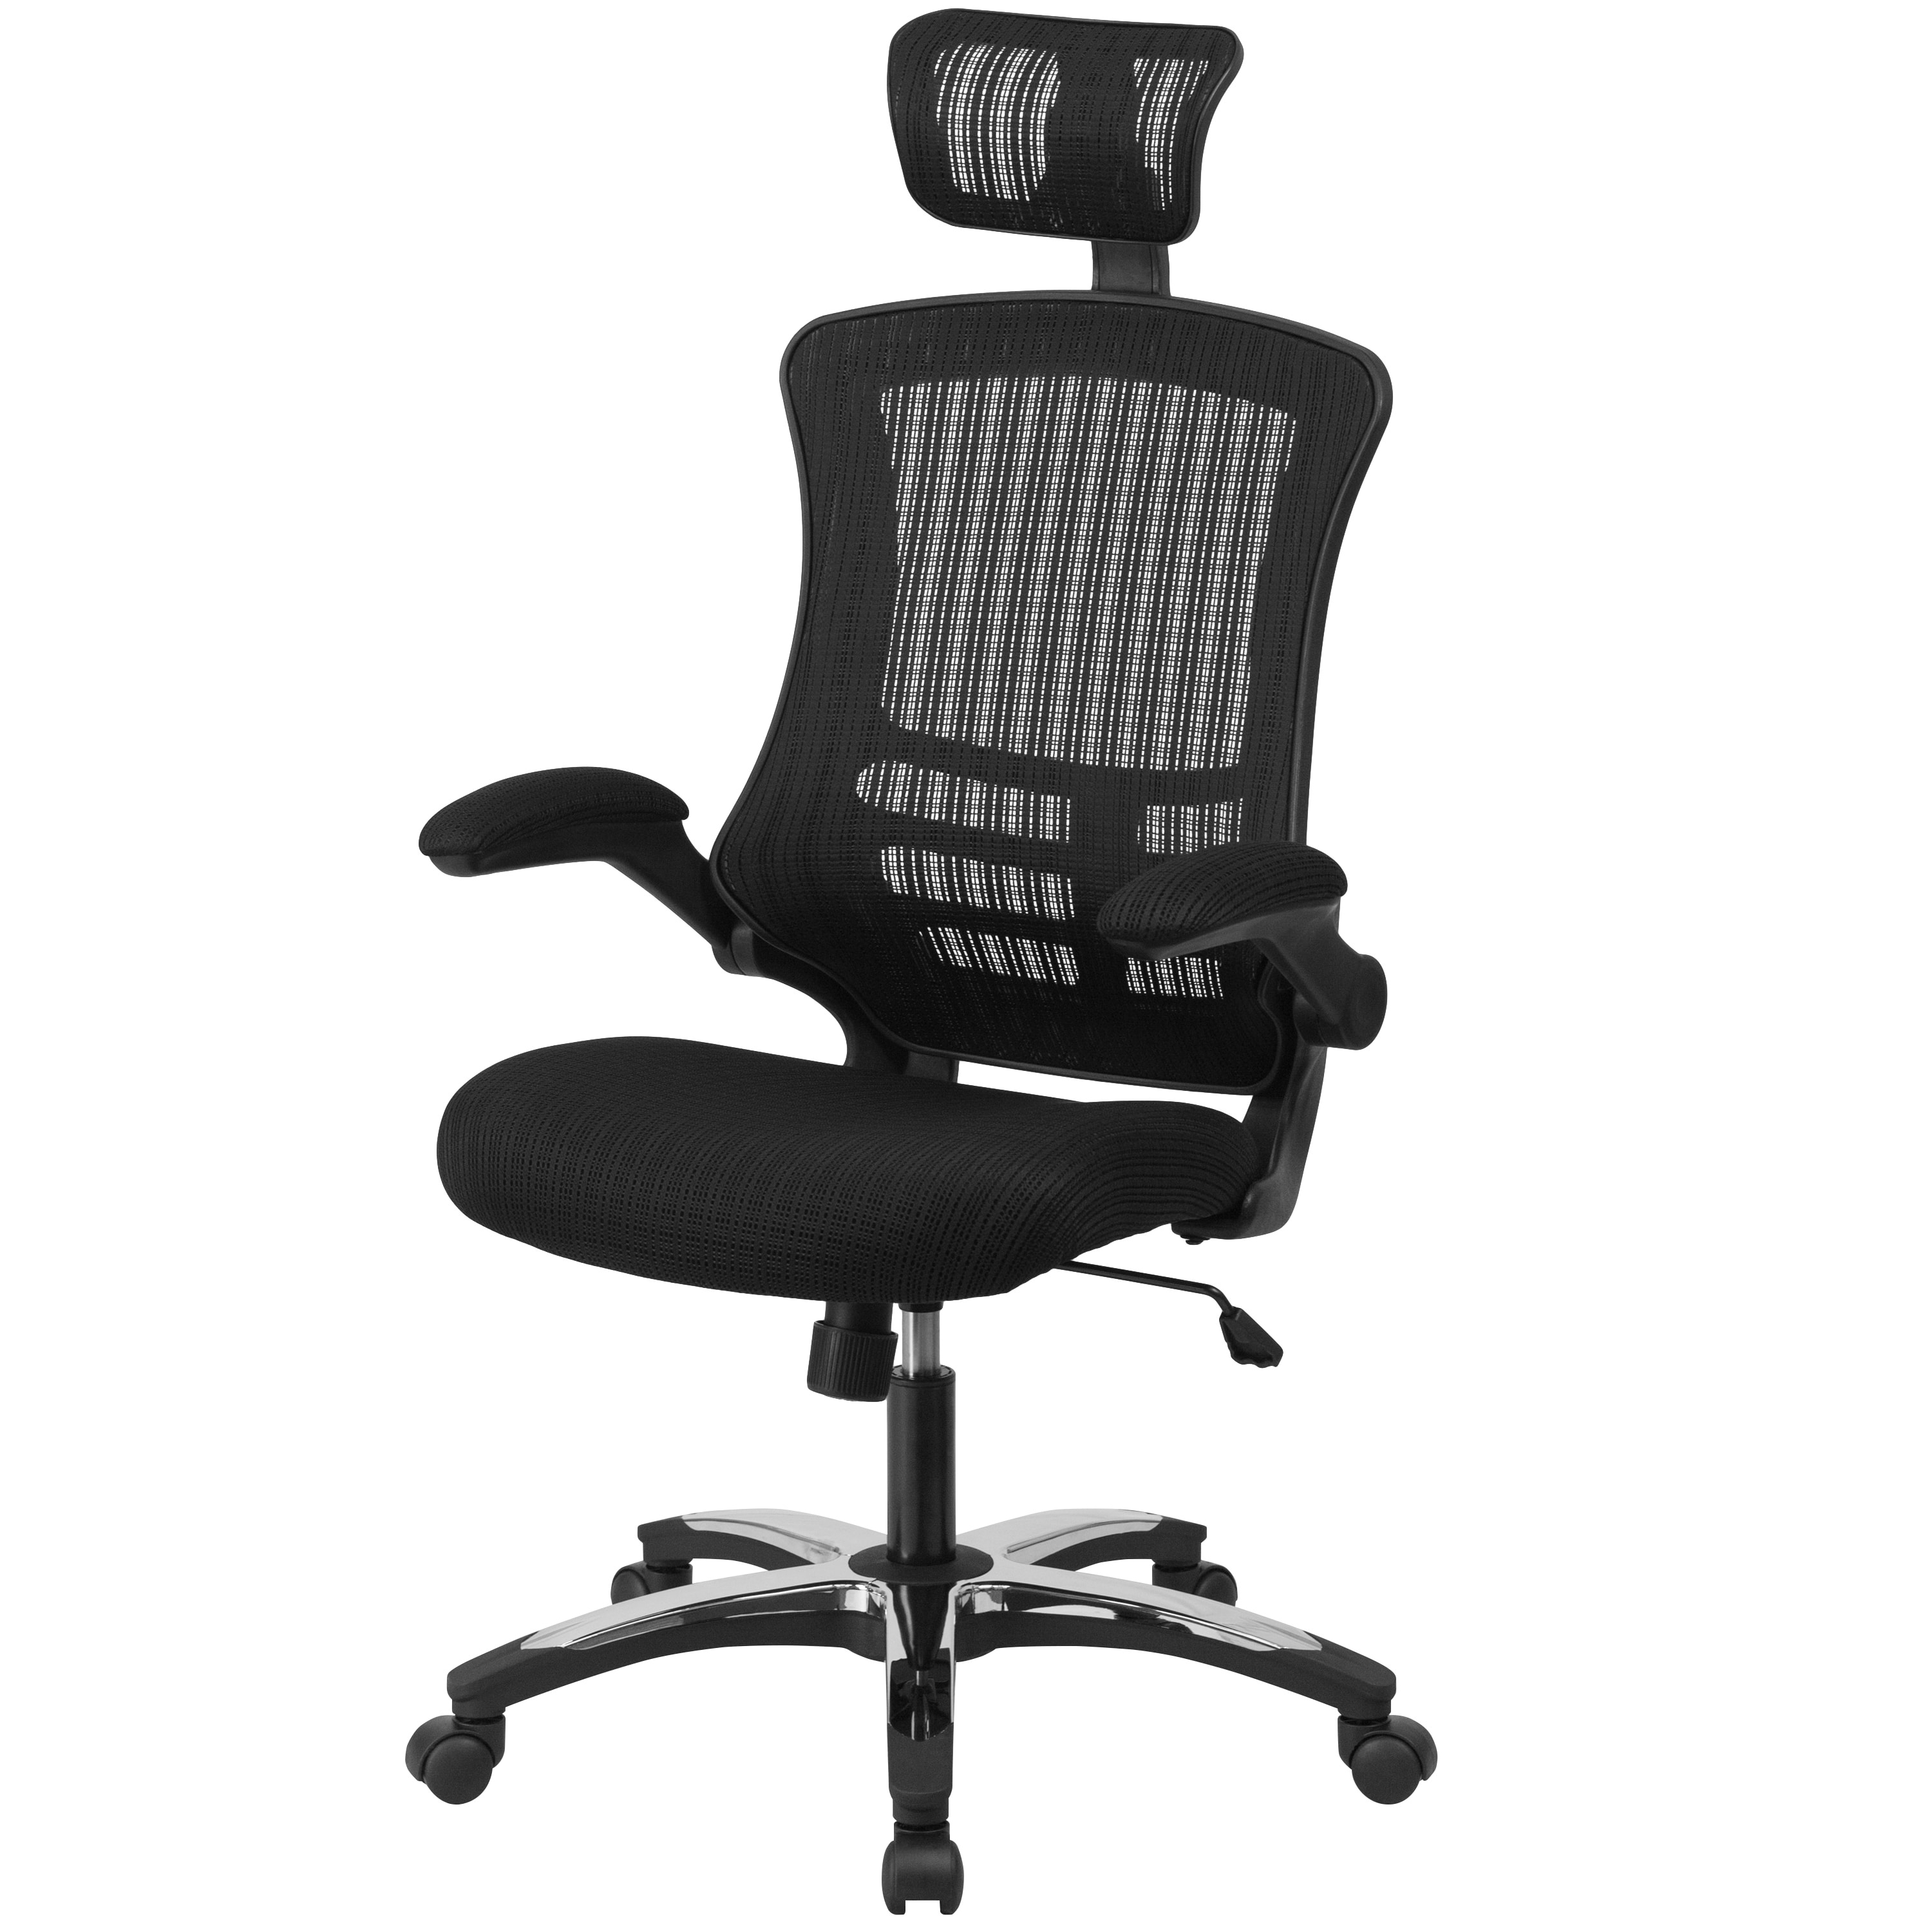 Executive Office Chairs With Flip Up Arms Throughout Popular High Back Mesh Executive Swivel Office Chair With Flip Up Arms And (View 11 of 20)